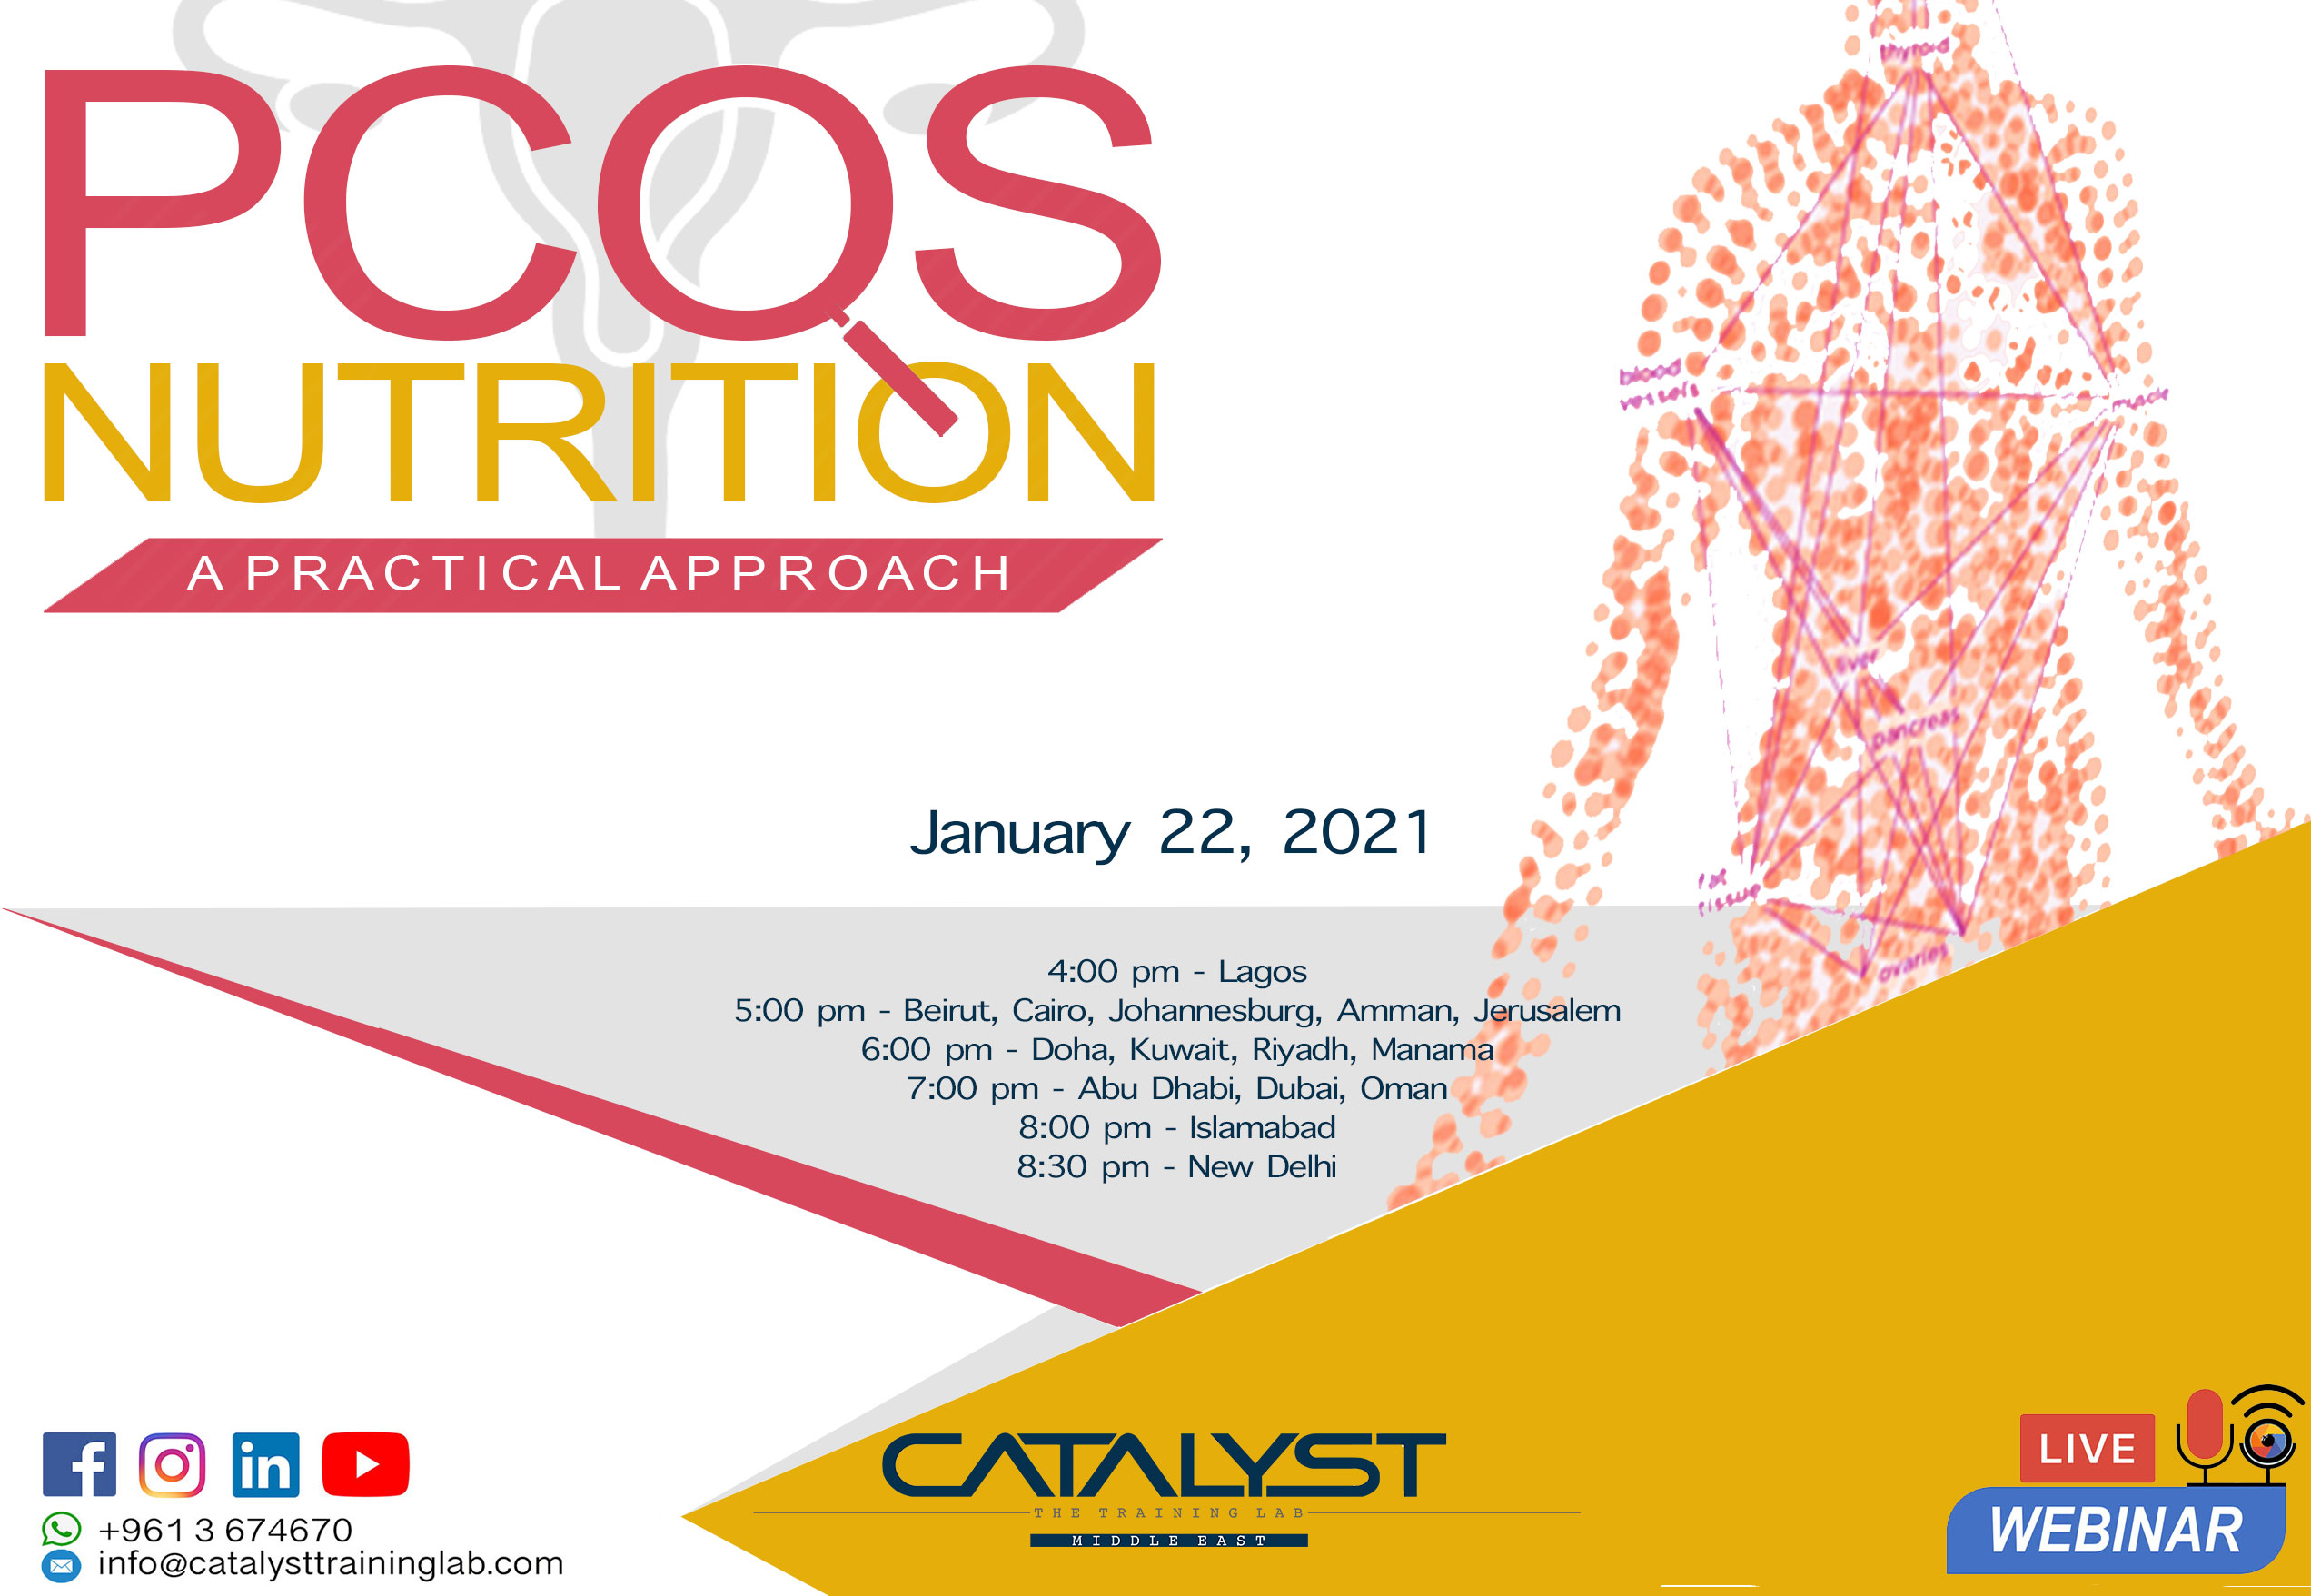 PCOS NUTRITION - A Practical Approach